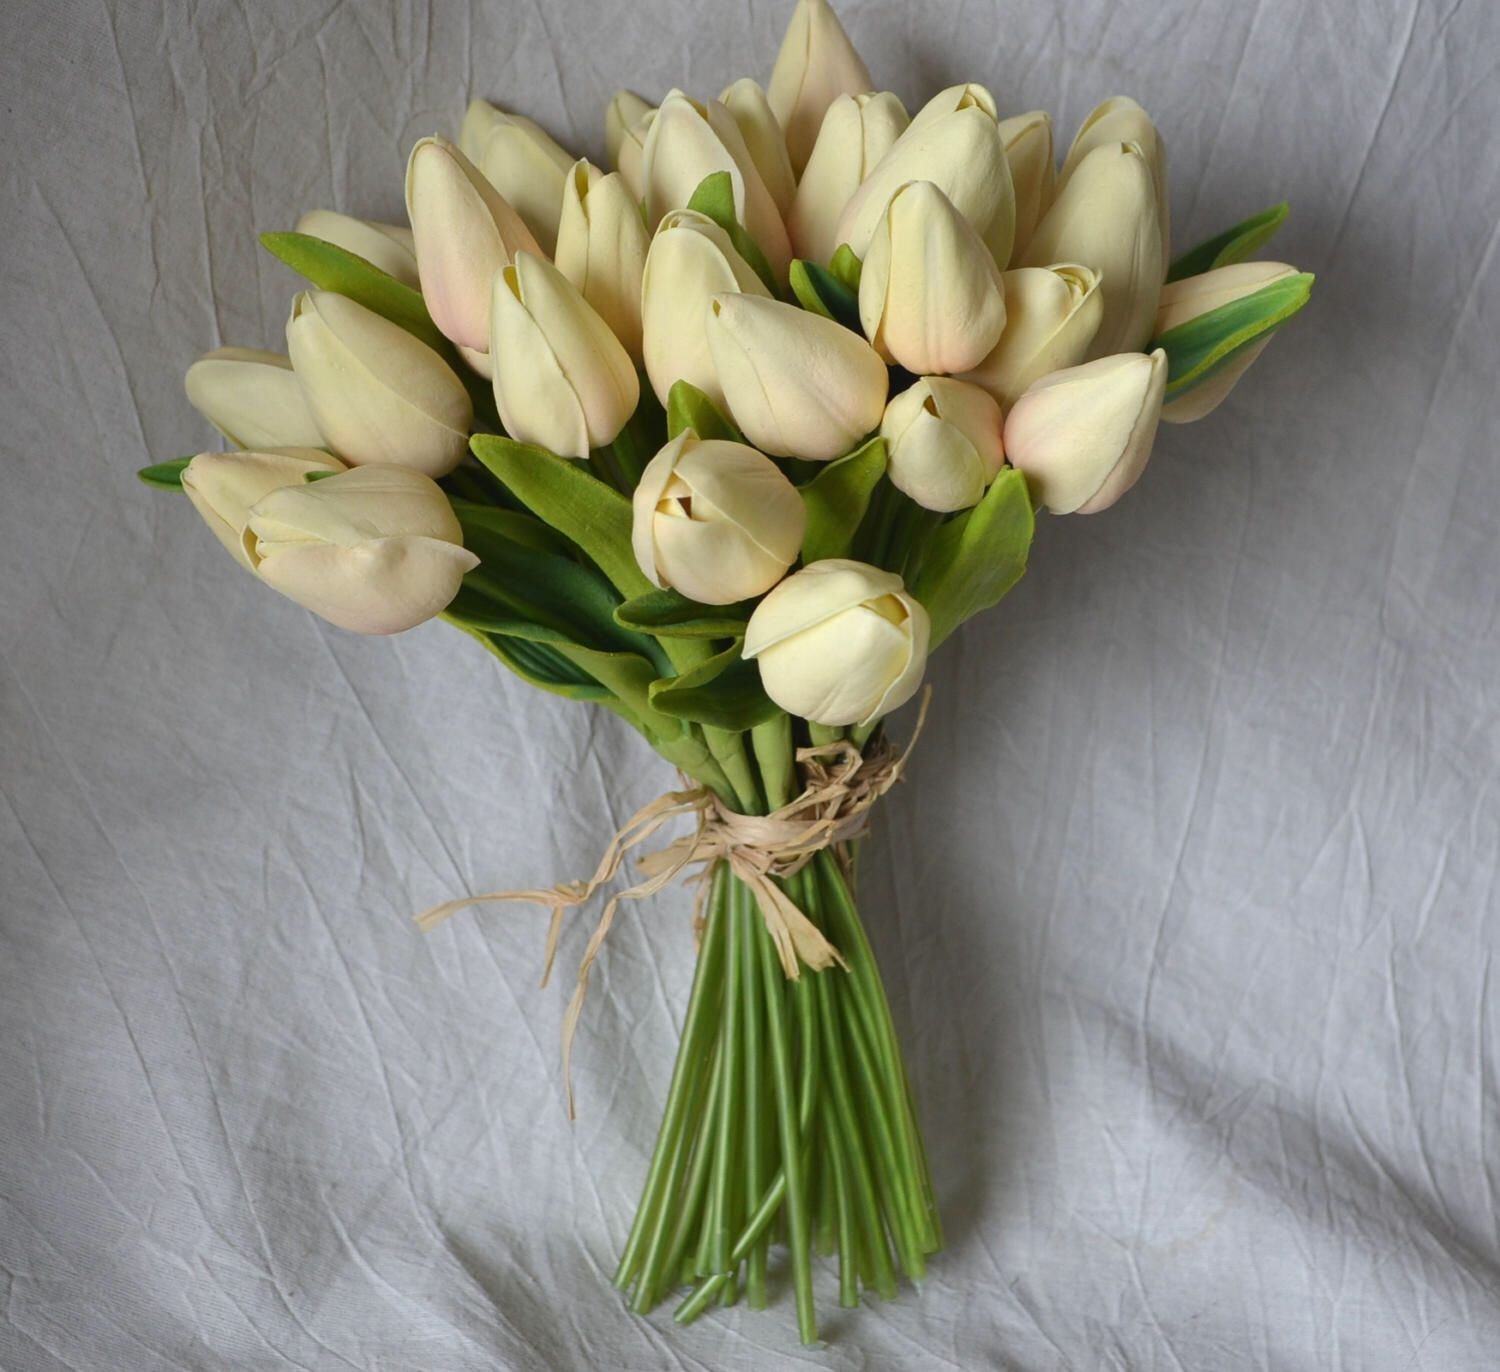 Real touch flower bouquets image collections flower wallpaper hd pale blush tulips real touch flowers diy silk bridal bouquets pale blush tulips real touch flowers izmirmasajfo